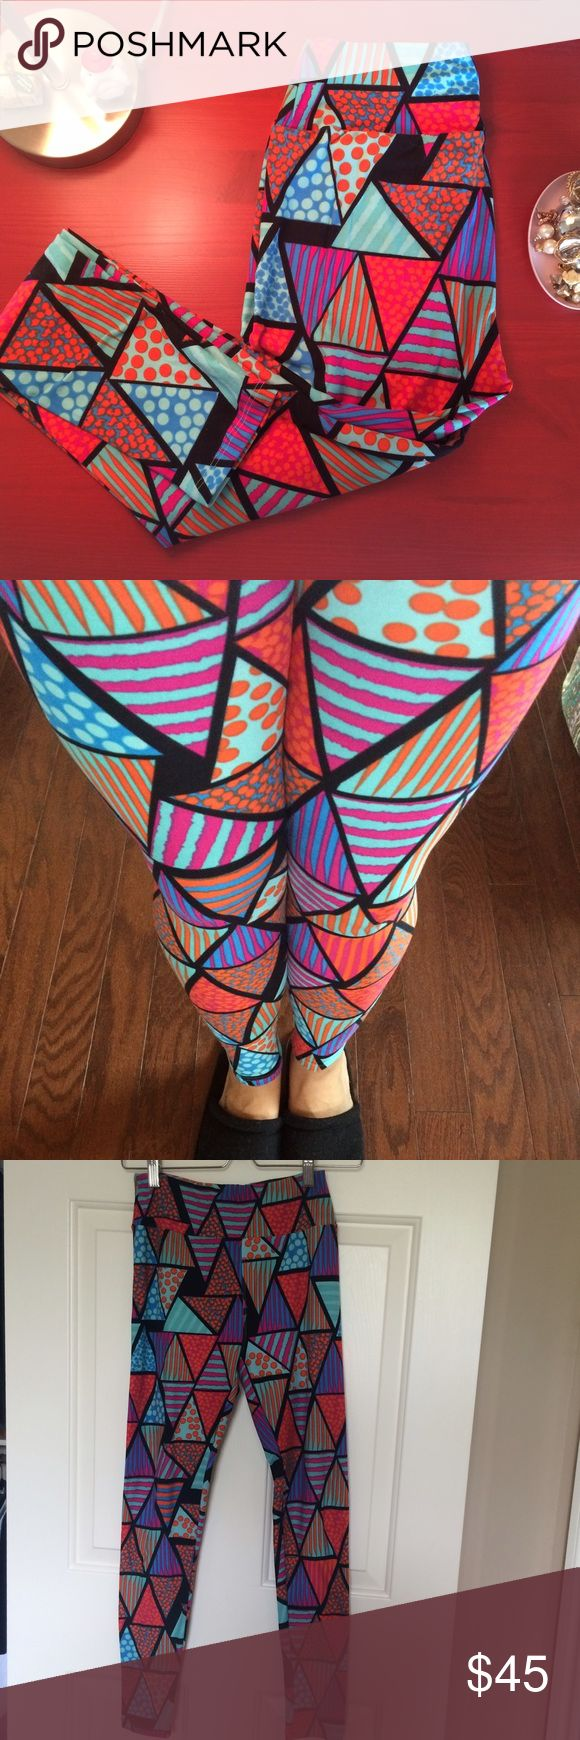 Patterned triangle leggings Rare LuLaRoe butter soft leggings with funky triangle pattern. 92% polyester, 8% spandex. Taken out of the package and tried on only for photo. This design is particularly hard to find. OS leggings will fit 0-12. LuLaRoe Pants Leggings